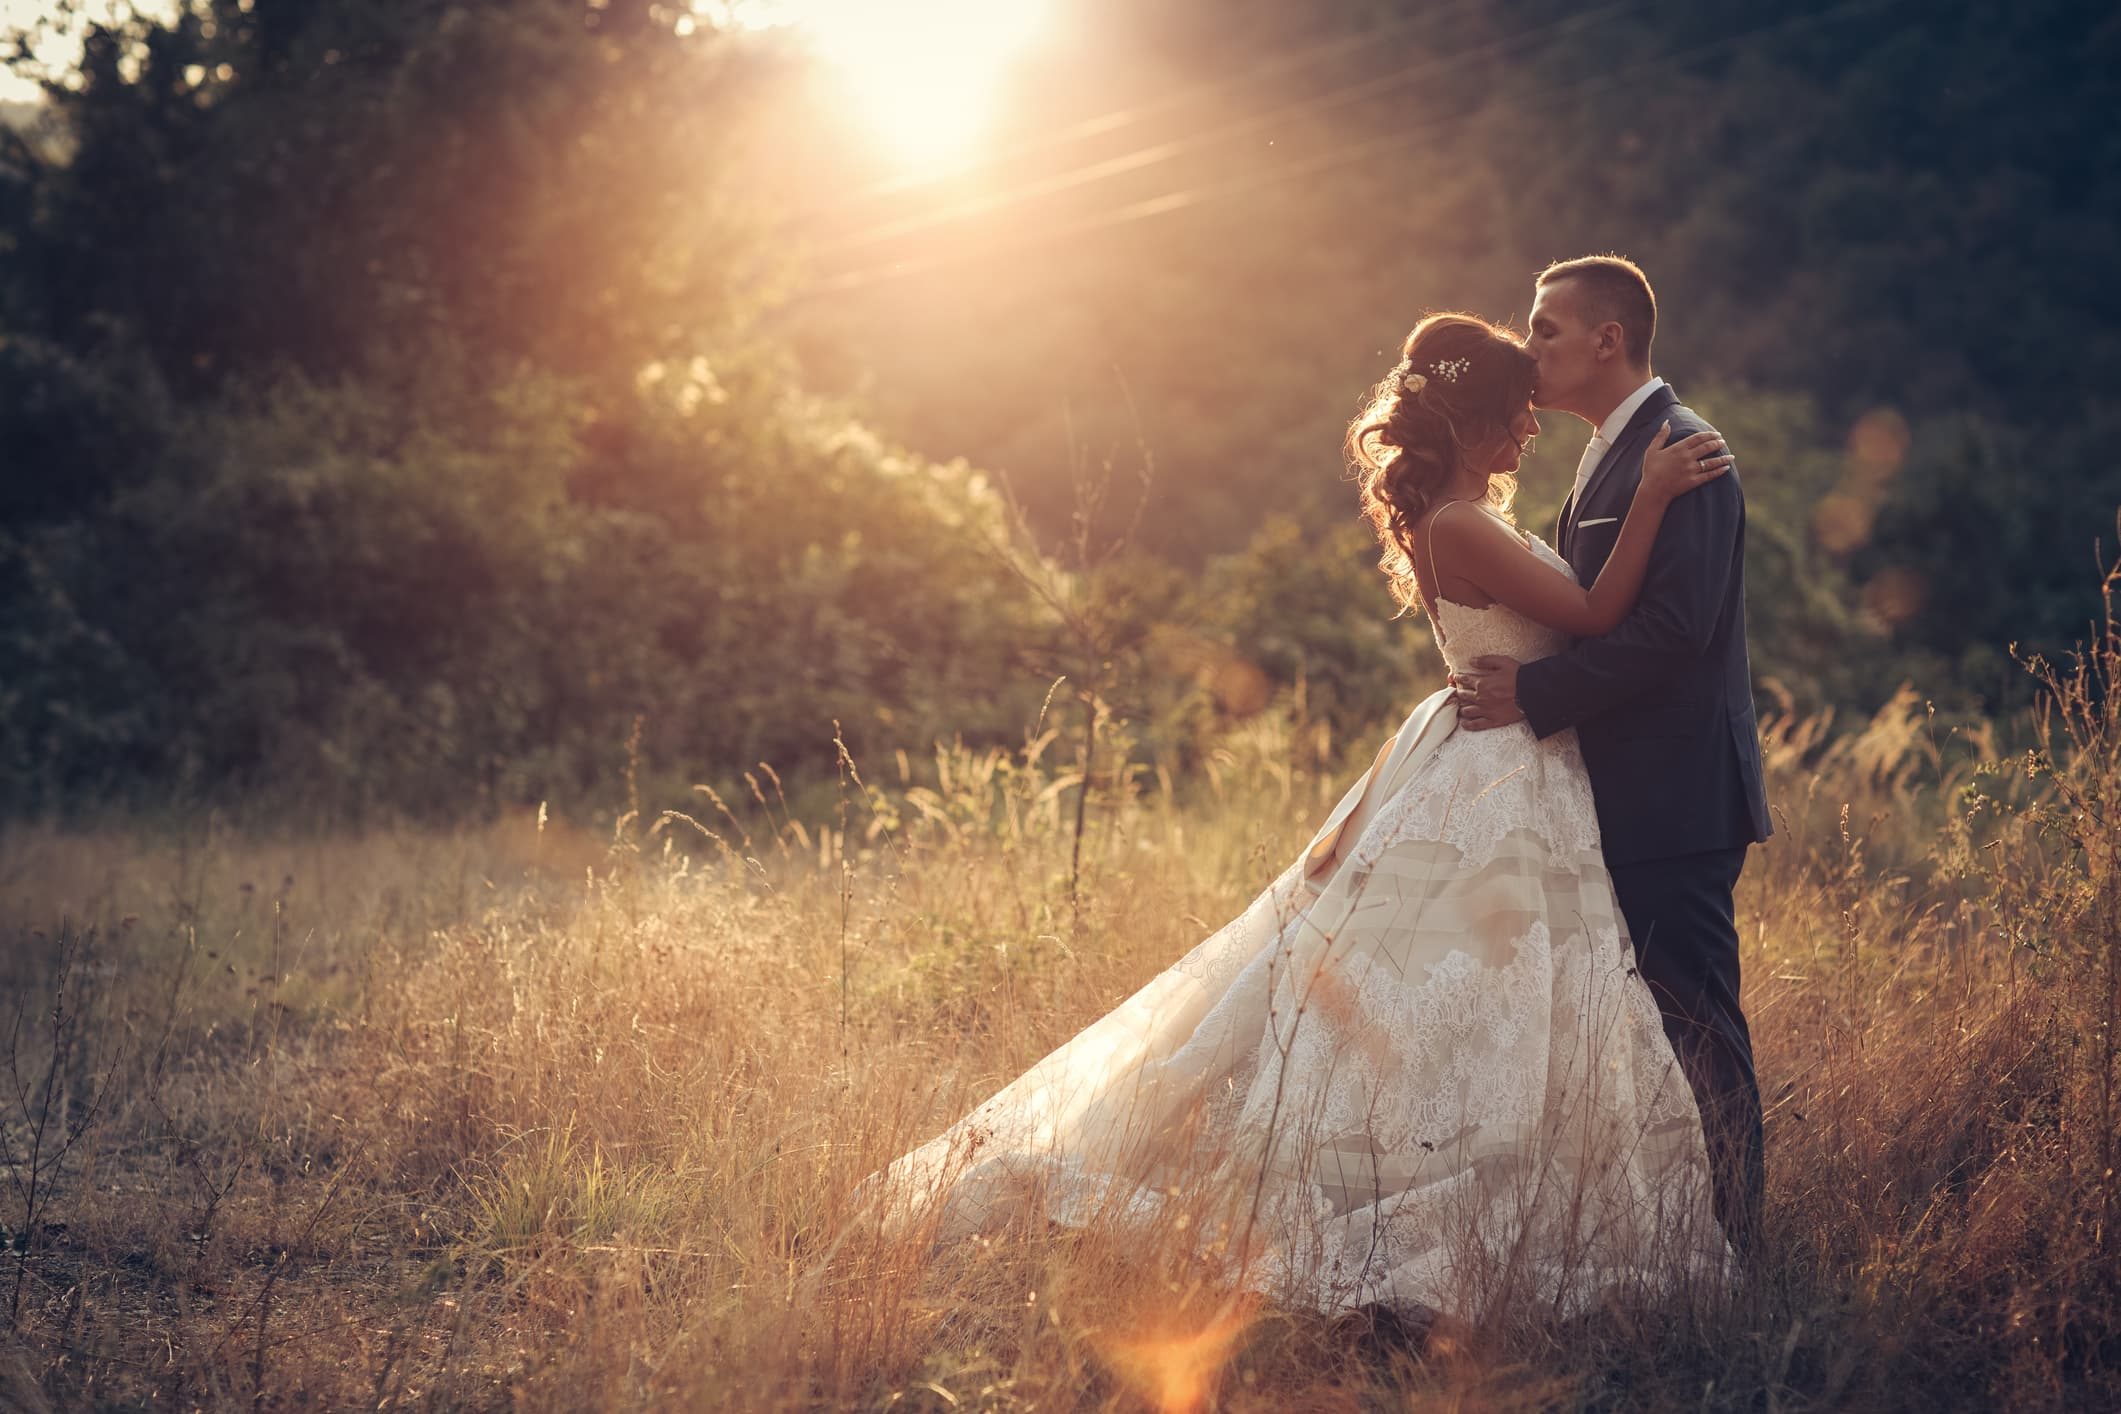 Wedding Photography Guide: Wedding Photography Tips From The Pros